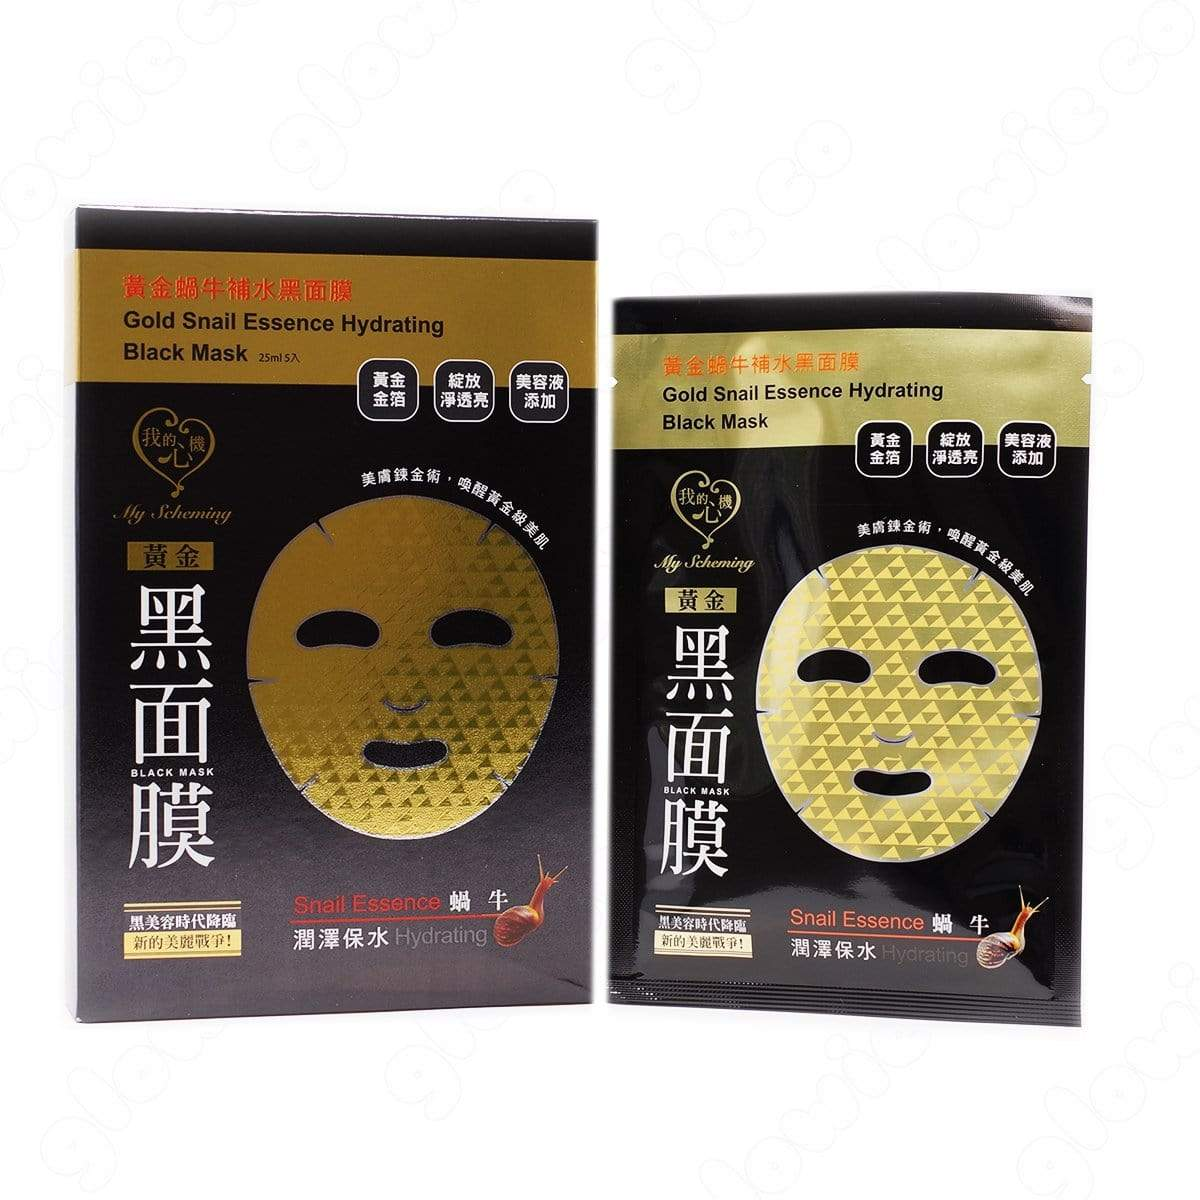 My Scheming Gold Snail Essence Hydrating Black Sheet Mask